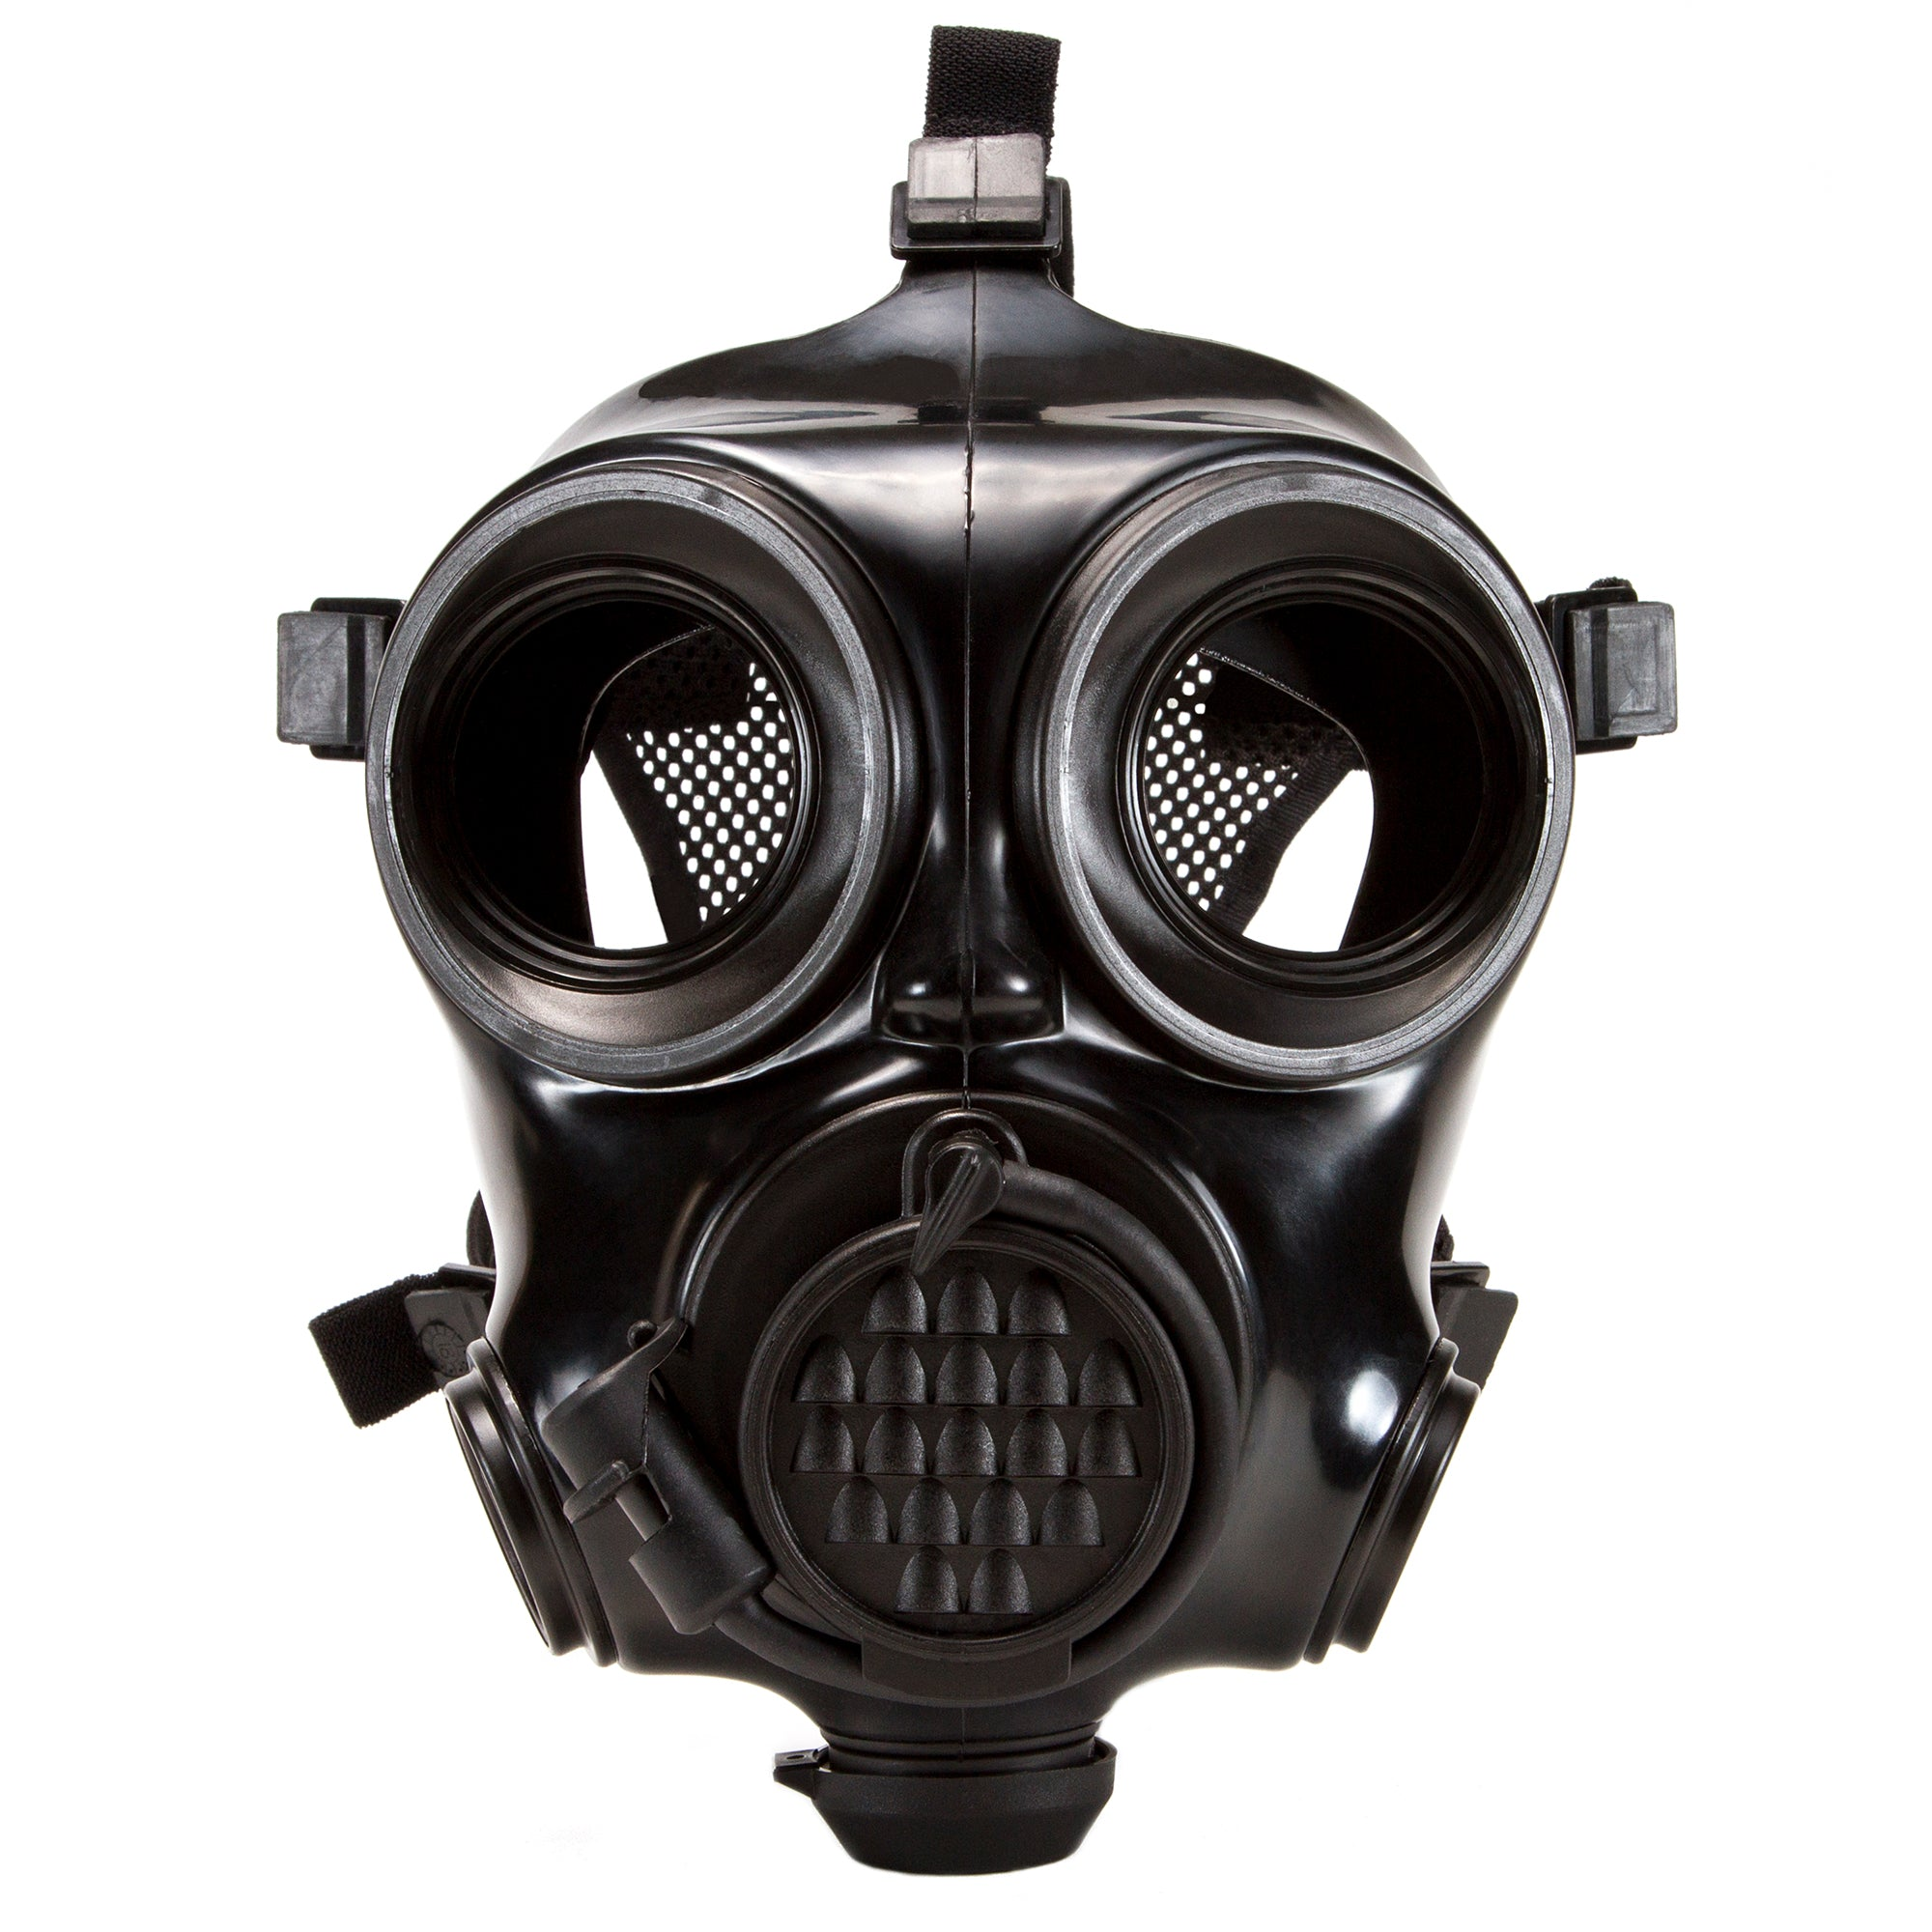 Close up of the CM-7M Military Gas Mask